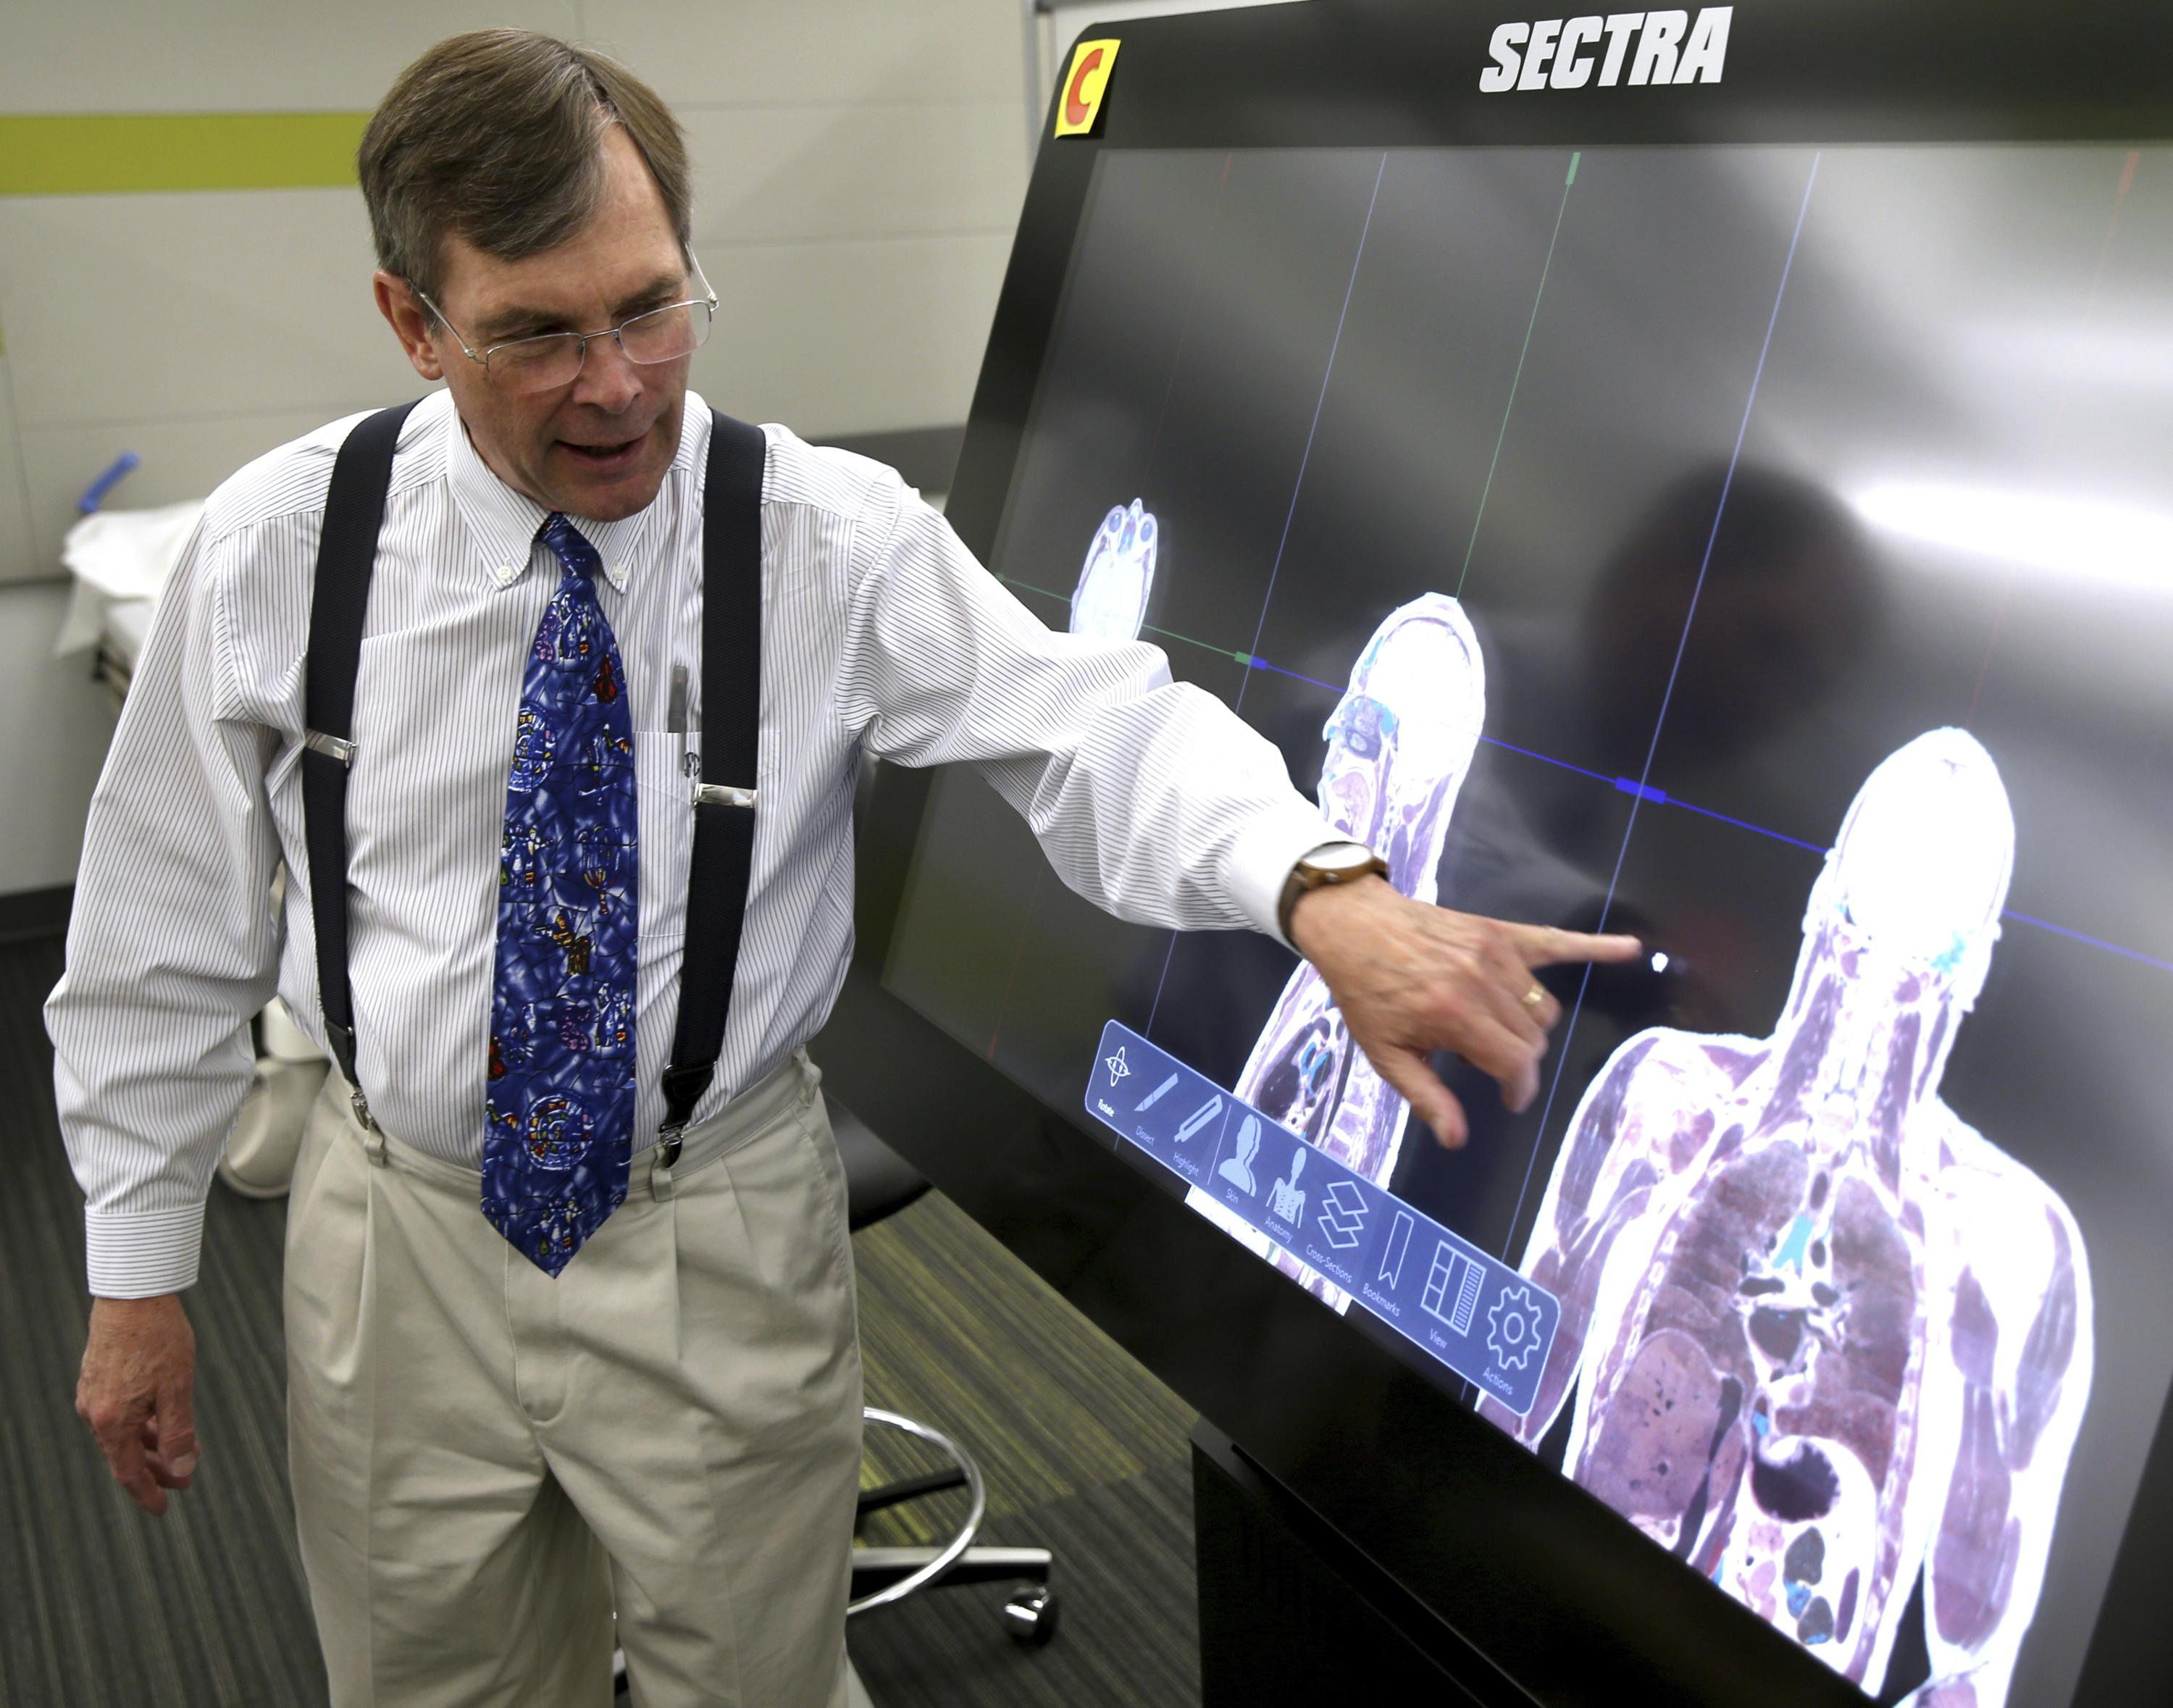 UNLV med school would pair virtual, hands-on cadaver labs